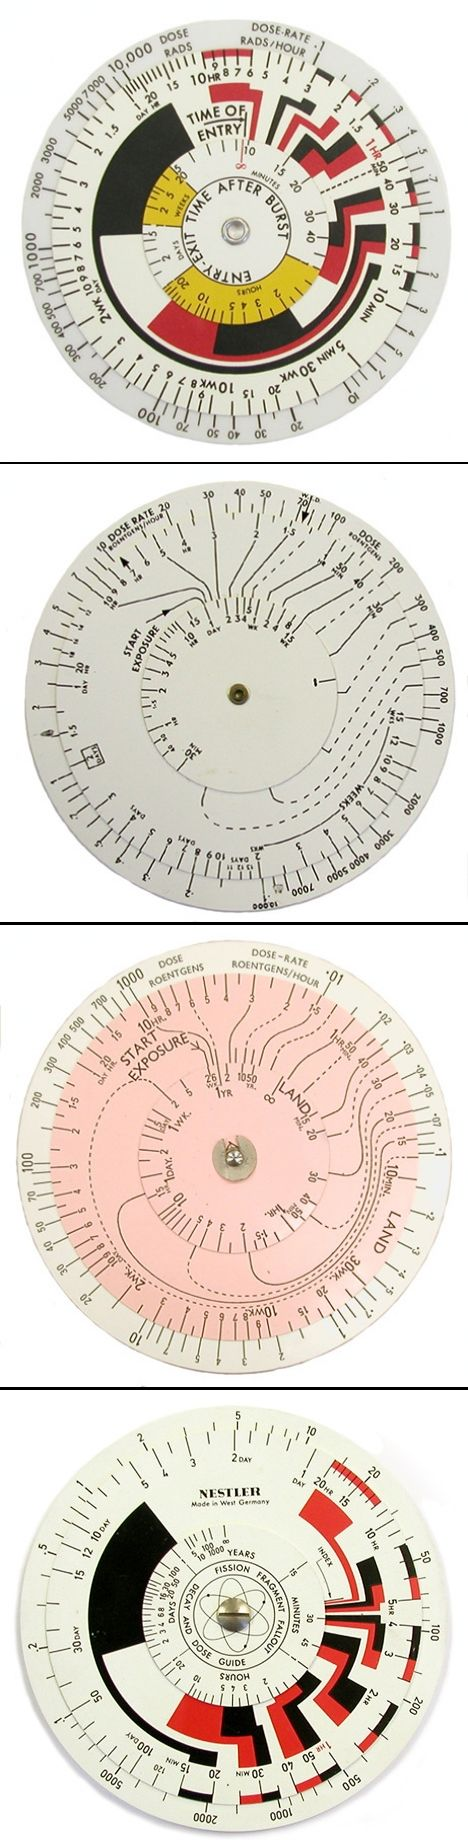 Nuclear Slide Rules #infographic